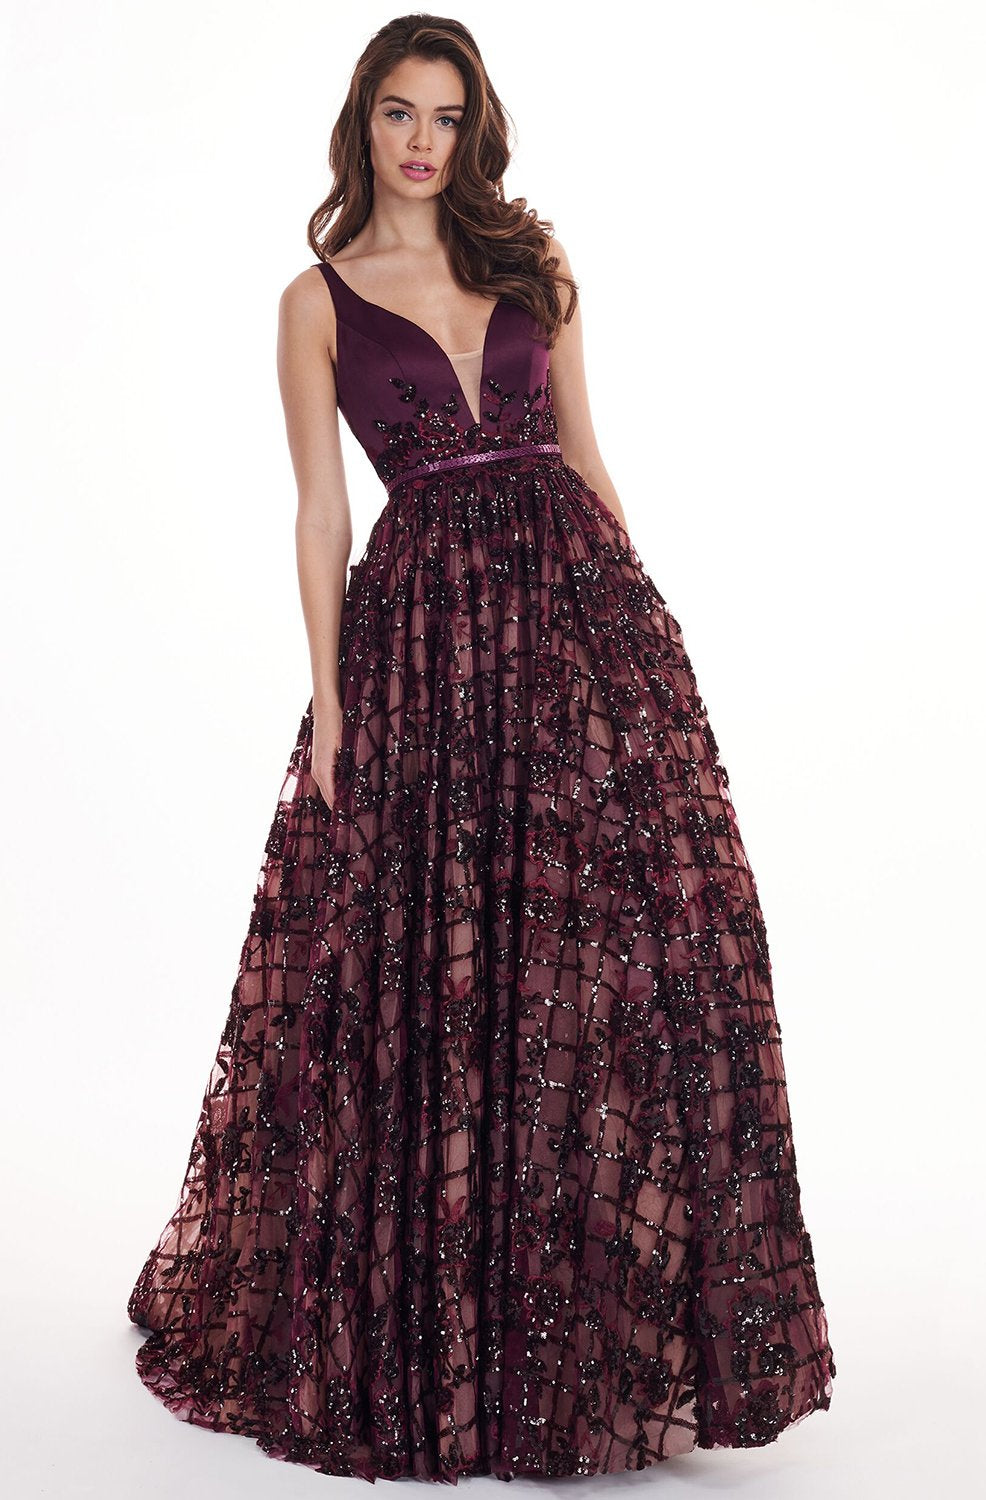 Rachel Allan - 6431 Sleeveless V Neck Floral Lace A-Line Prom Gown In Black and Purple